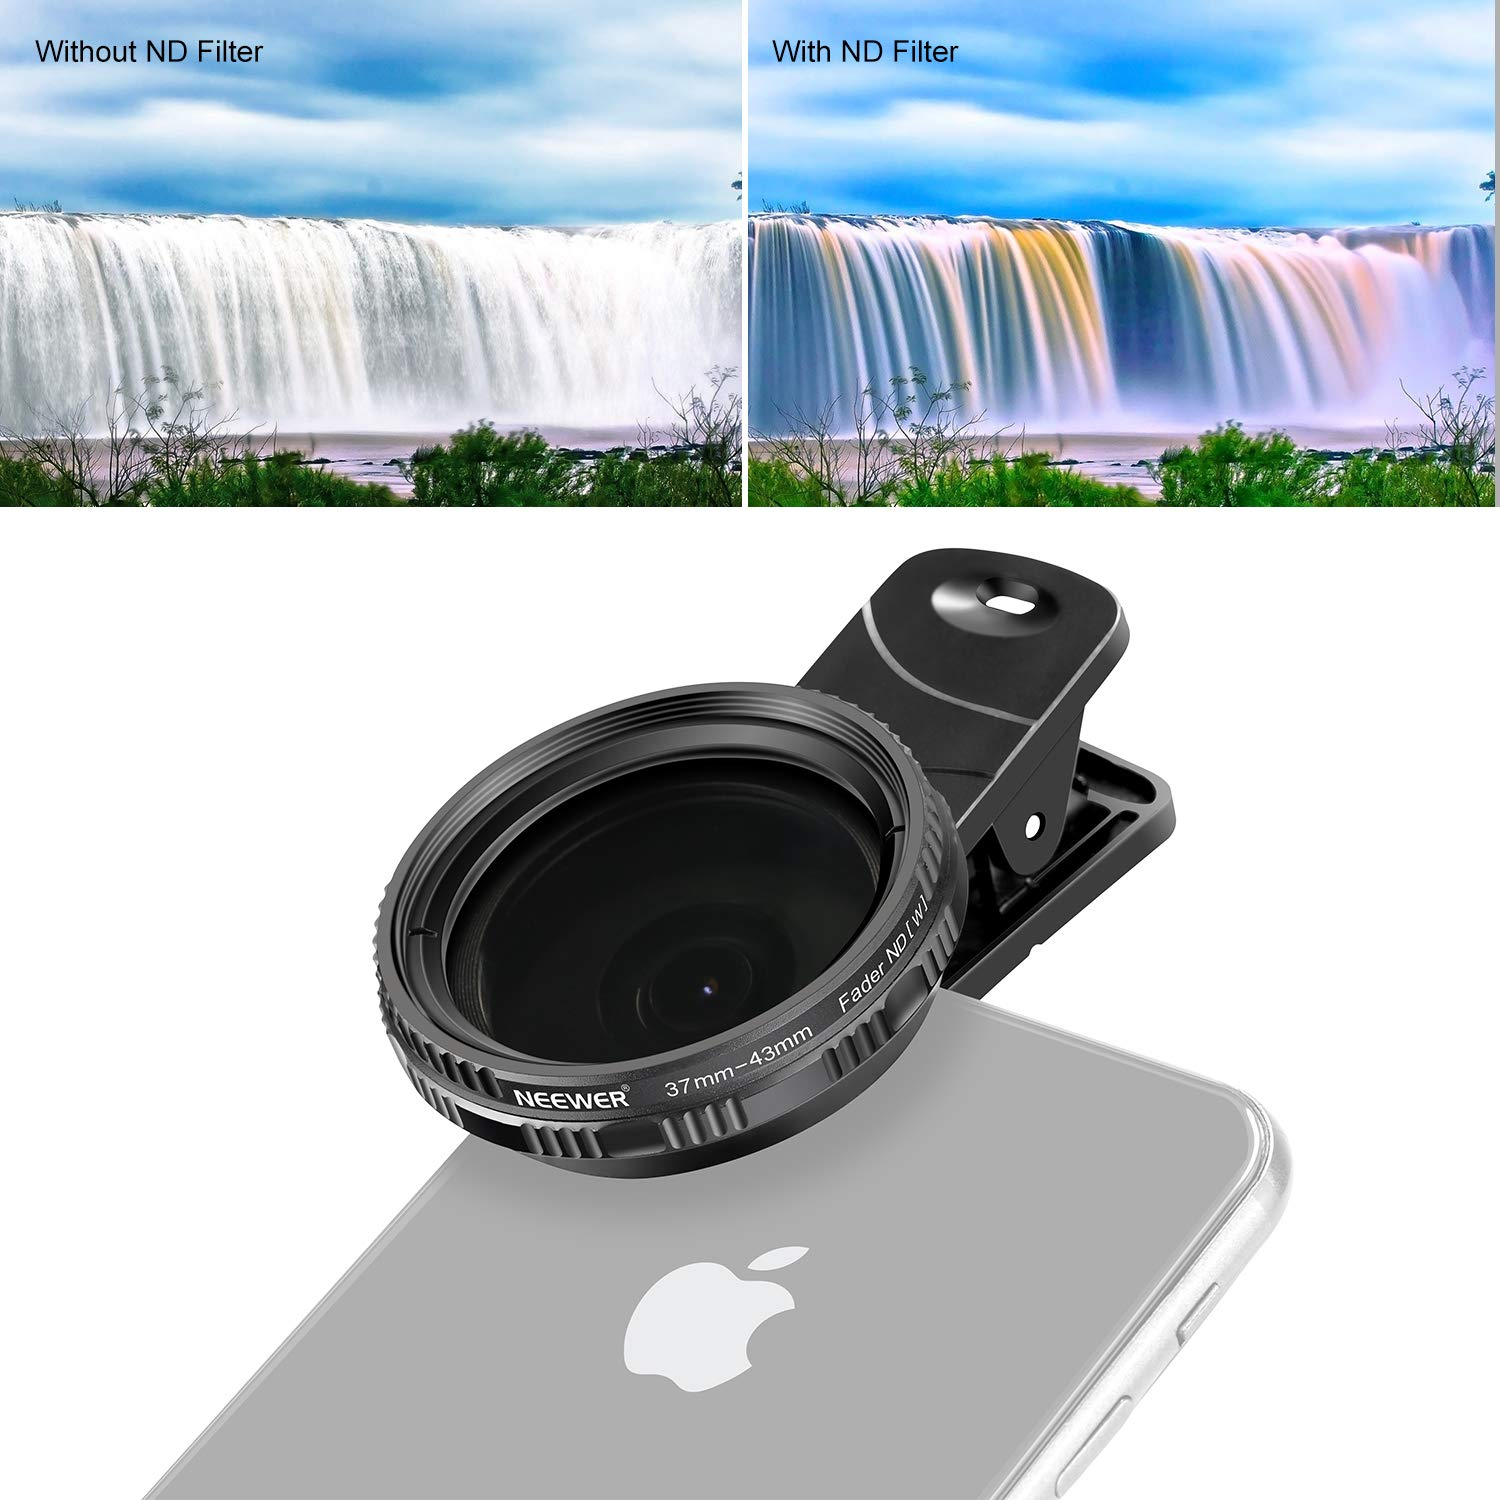 Neewer 37mm Clip-on ND 2-400 Cellphone Camera Lens Filter Kit: Adjustable Neutral Density Filter with Phone Clip for iPhone X 8 plus 7 Plus 7 6 6S Plus Samsung HTC Motorola iPad and Other Smartphones by Neewer